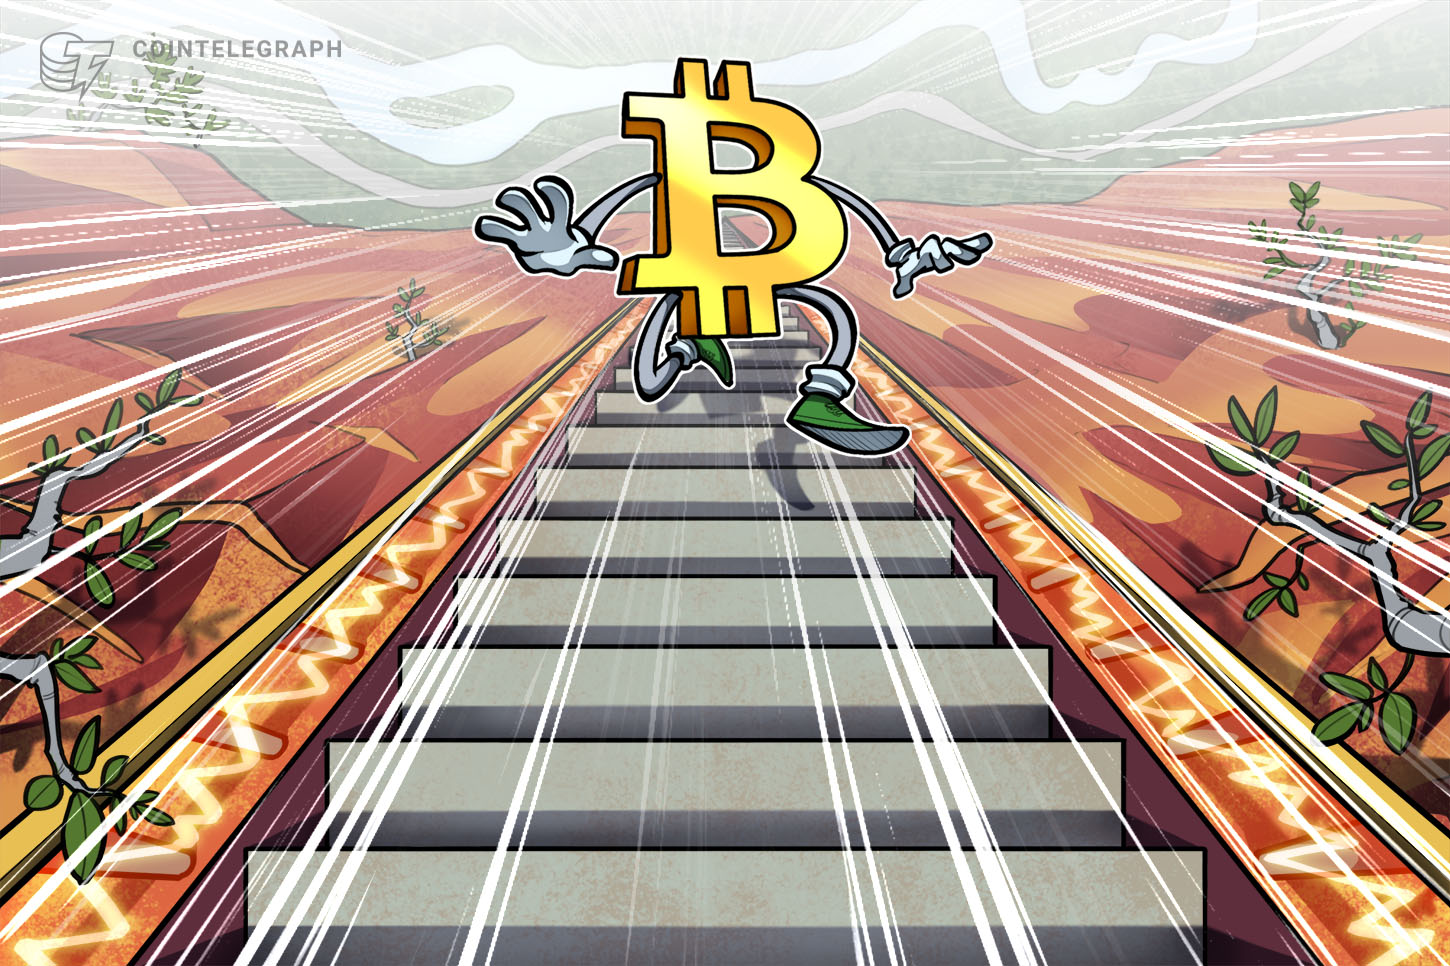 2 Bitcoin price indicators suggest BTC has not bottomed yet